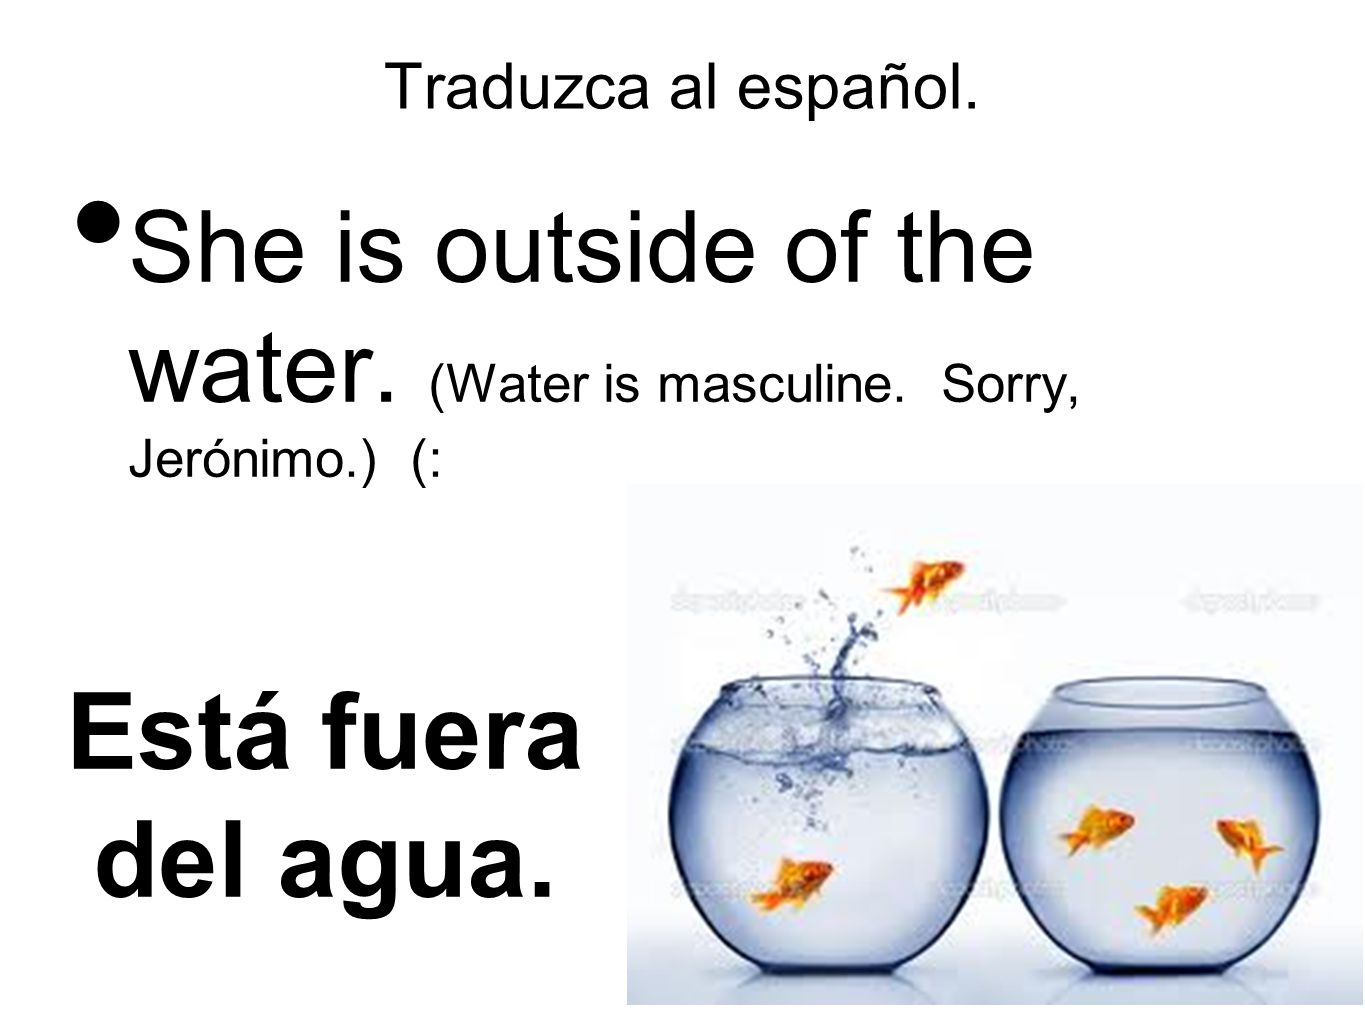 Traduzca al español. She is outside of the water.